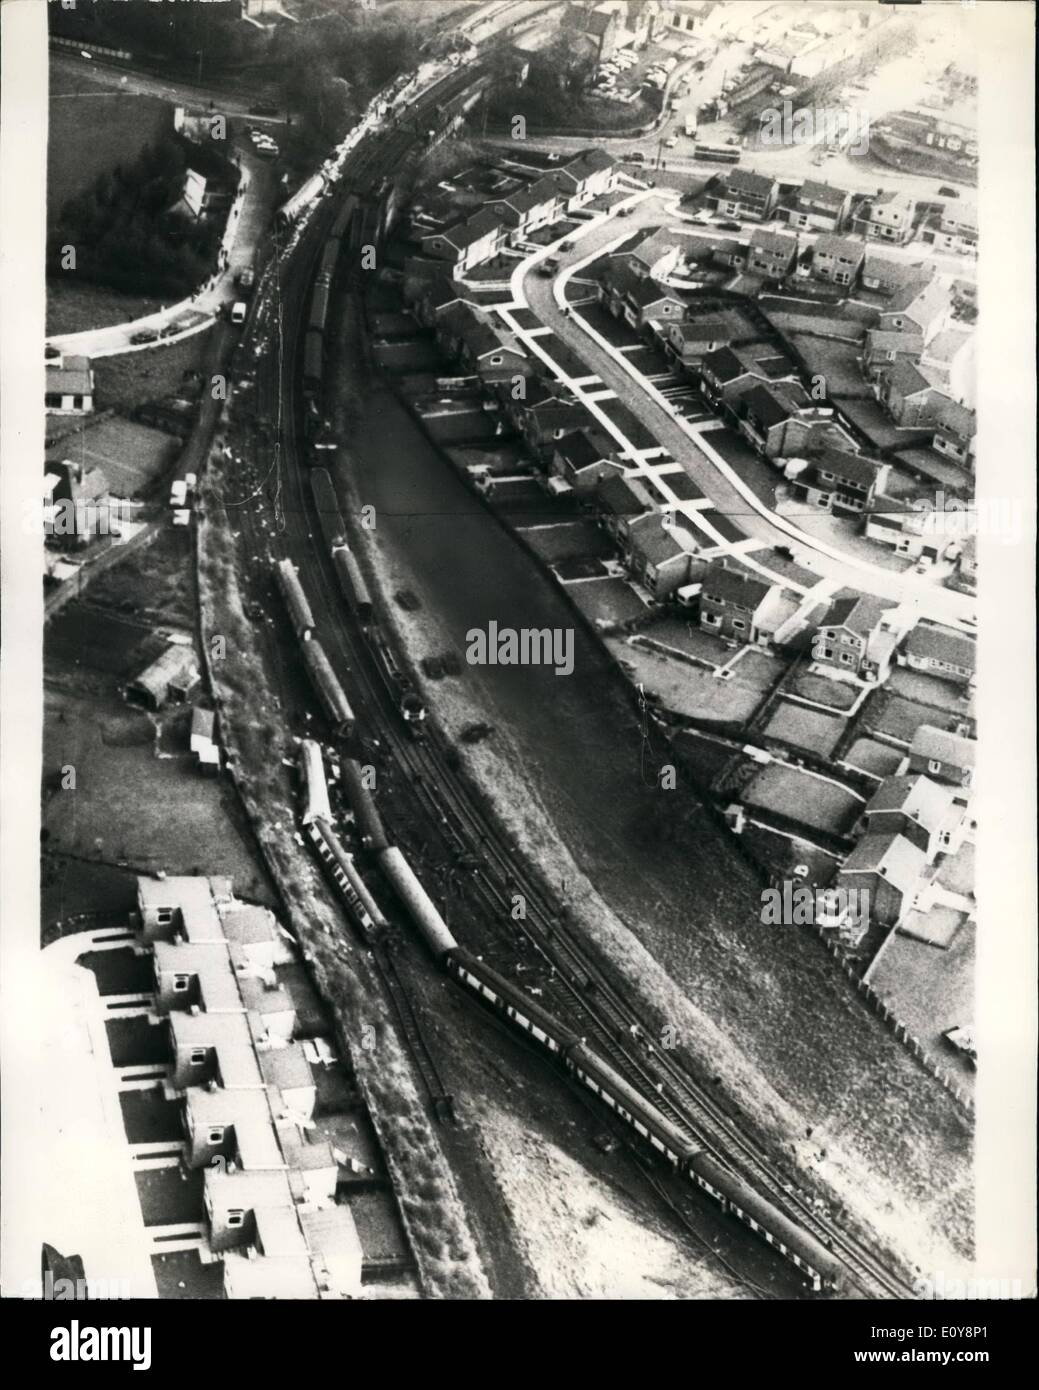 May 05, 1969 - Six Killed And 103 Injured As London Express Crashes: Six people died when the abordonian Express crashed outside Morpeth Station, Northpoland. The Express had left kings Cross Station, London early on Tuesday evening at the crash took place at about two O'clock in the morning. Photo Shows: The wreckage of the crack Aboronian Epress viewed from the air today. - Stock Image